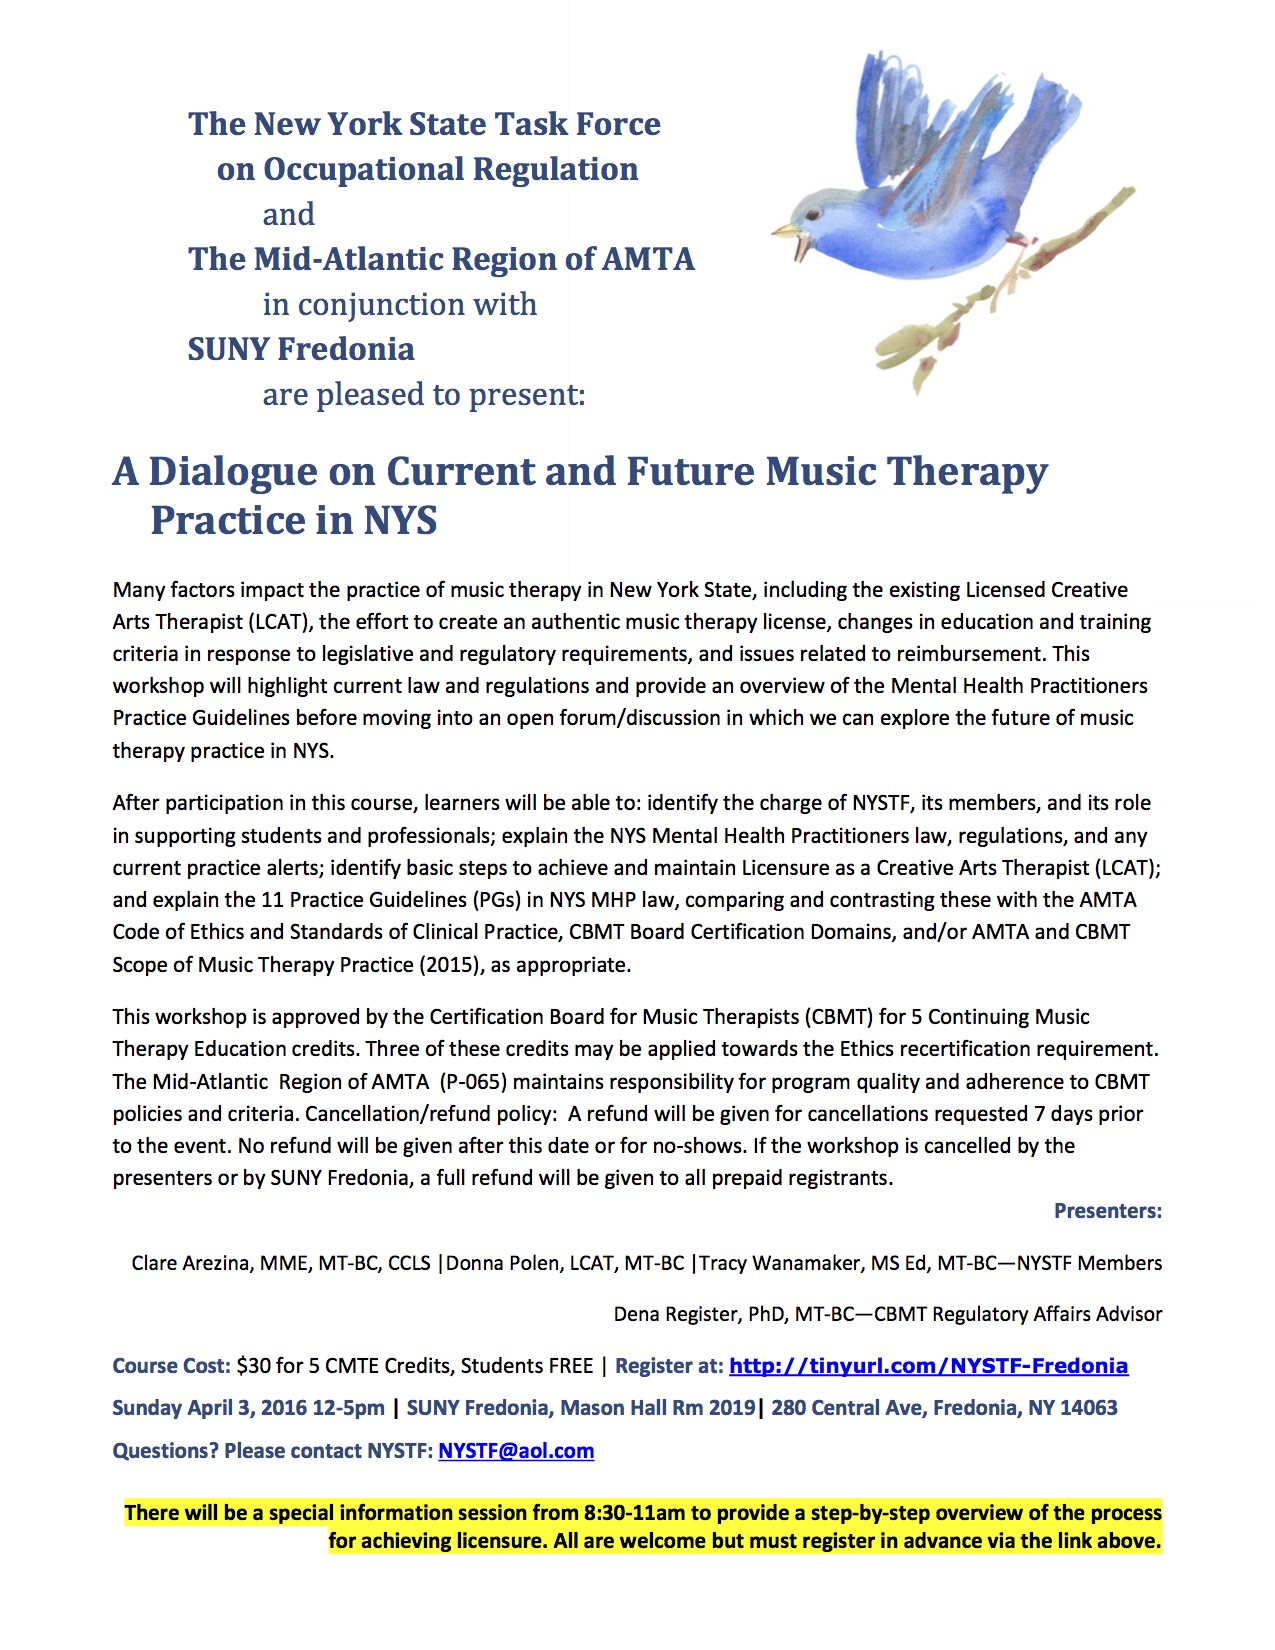 A Dialogue on Current and Future Music Therapy Practice in NYS